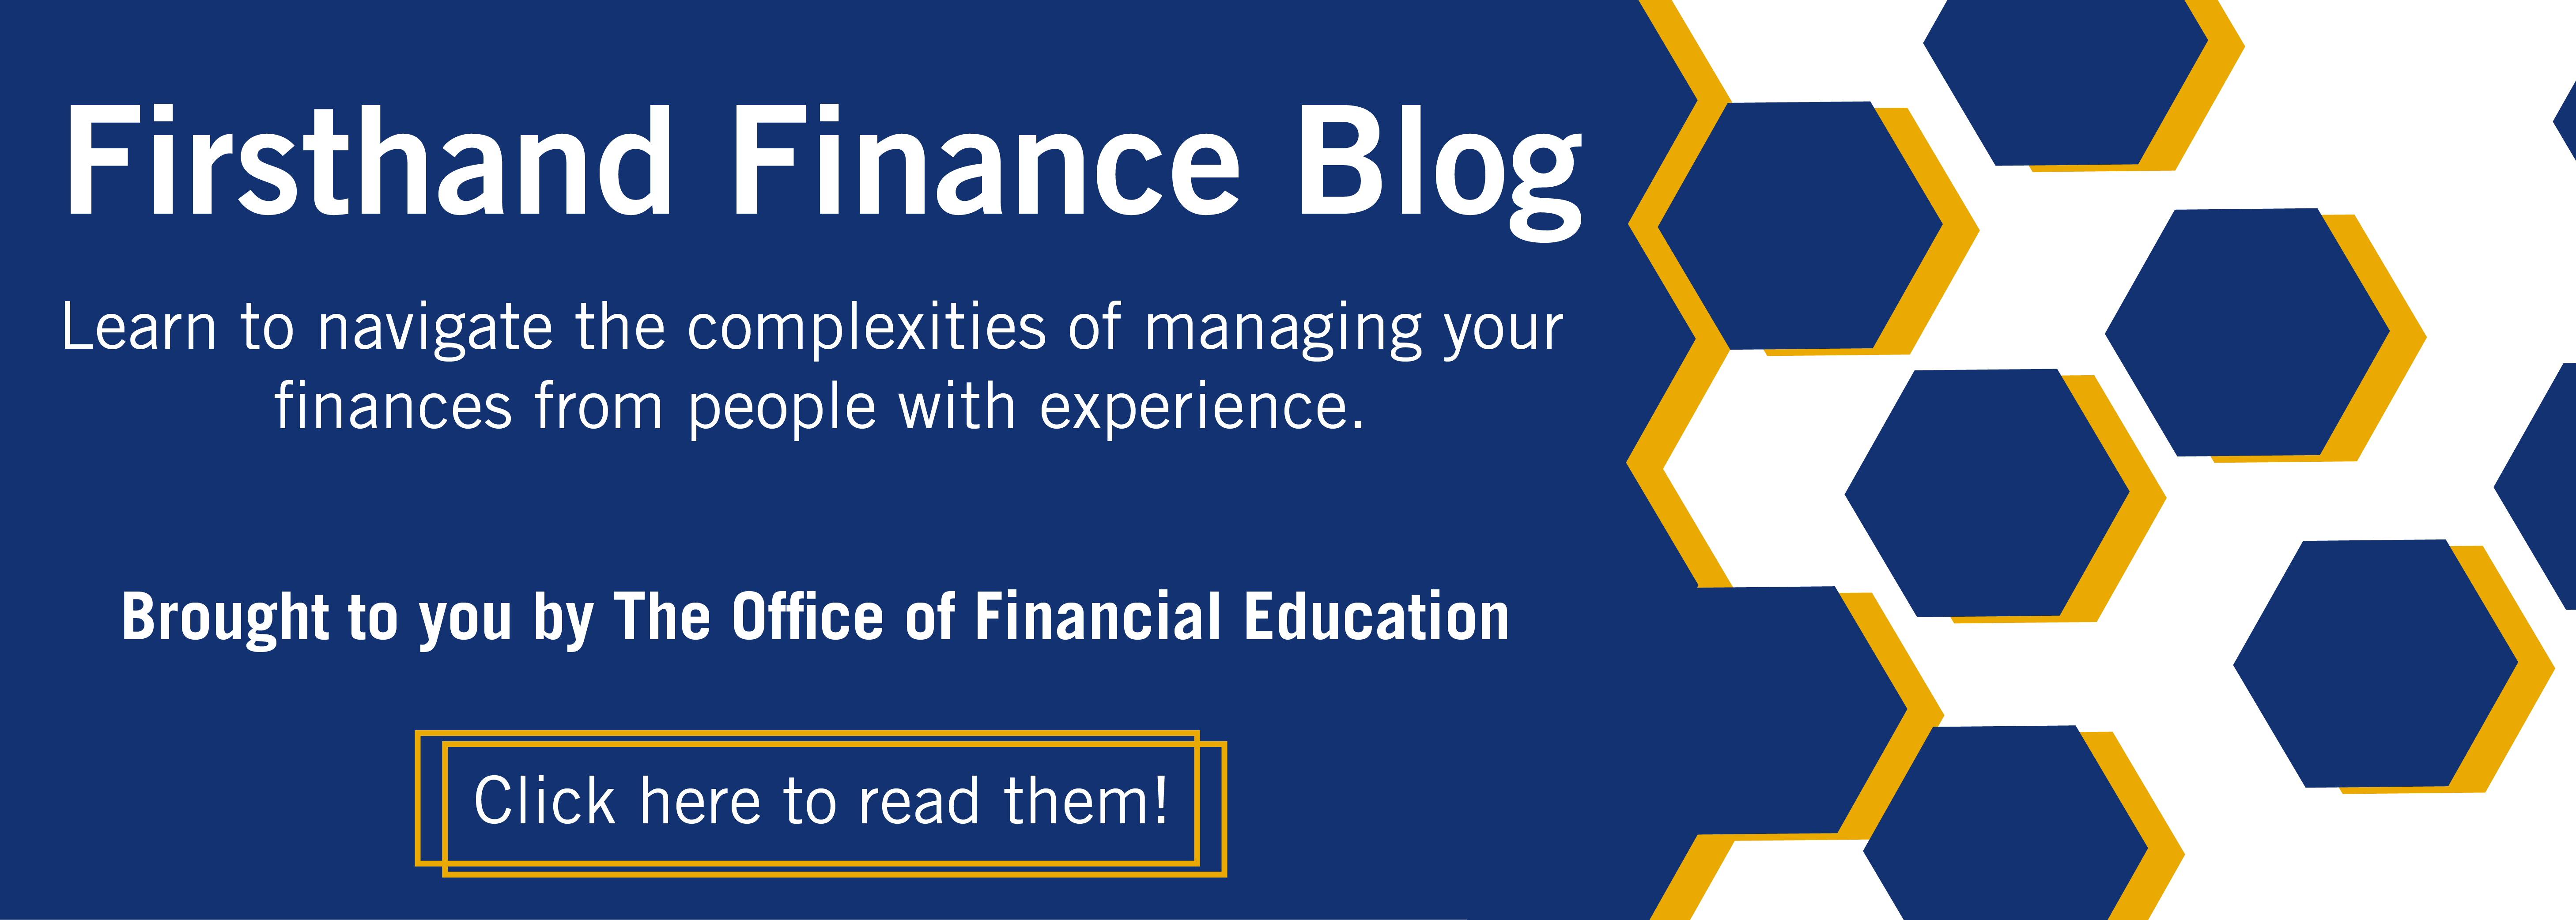 Learn to navigate the complexities of managing your finances from people with experience. Brought to you by The Office of Financial Education. Click here to read them!